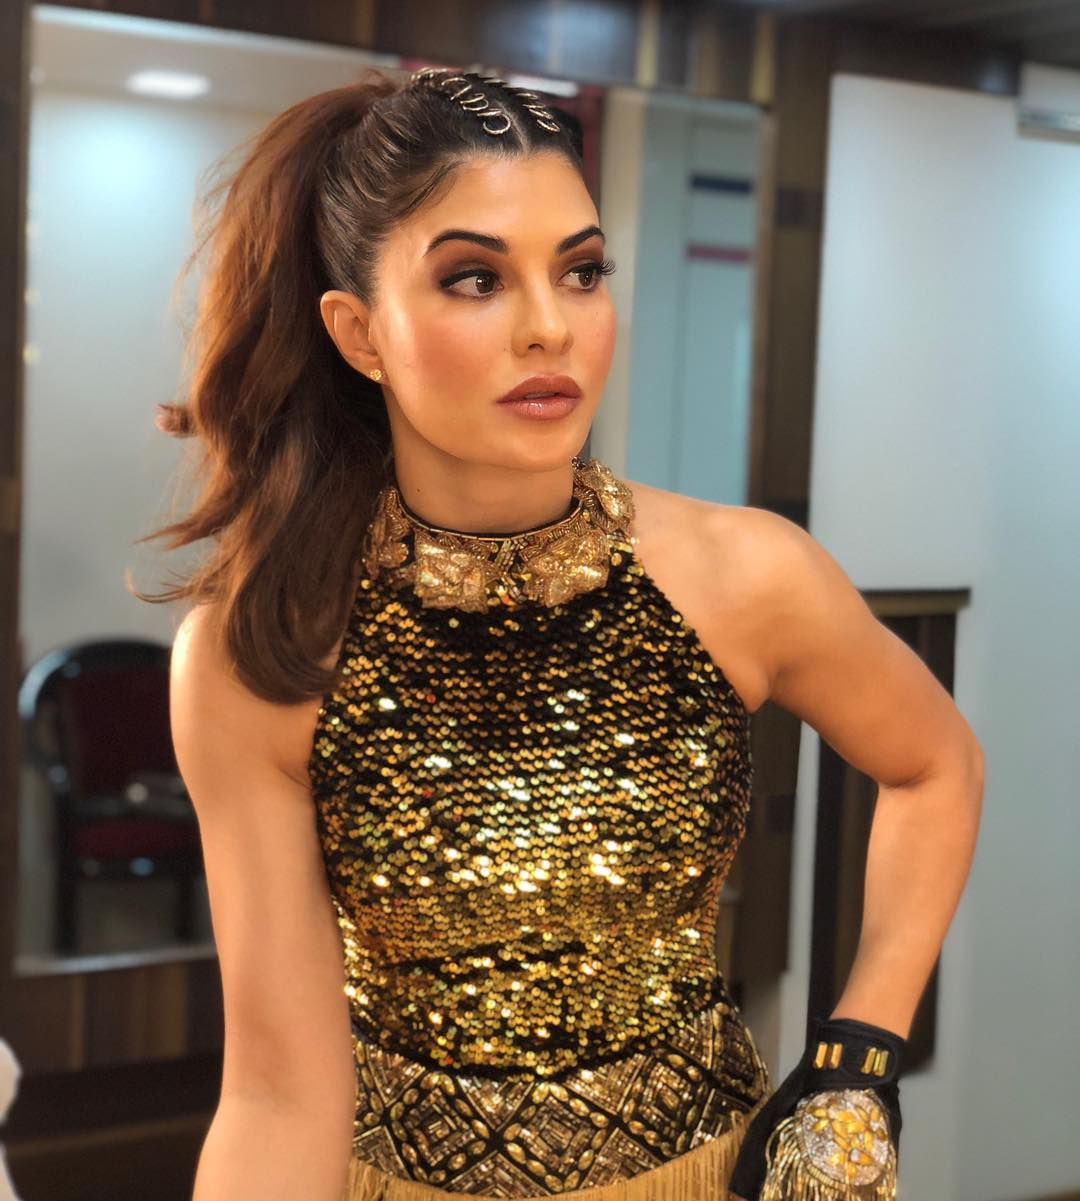 Jacqueline Fernandez to recreate Madhuri Dixit's Ek Do Teen for Baaghi 2